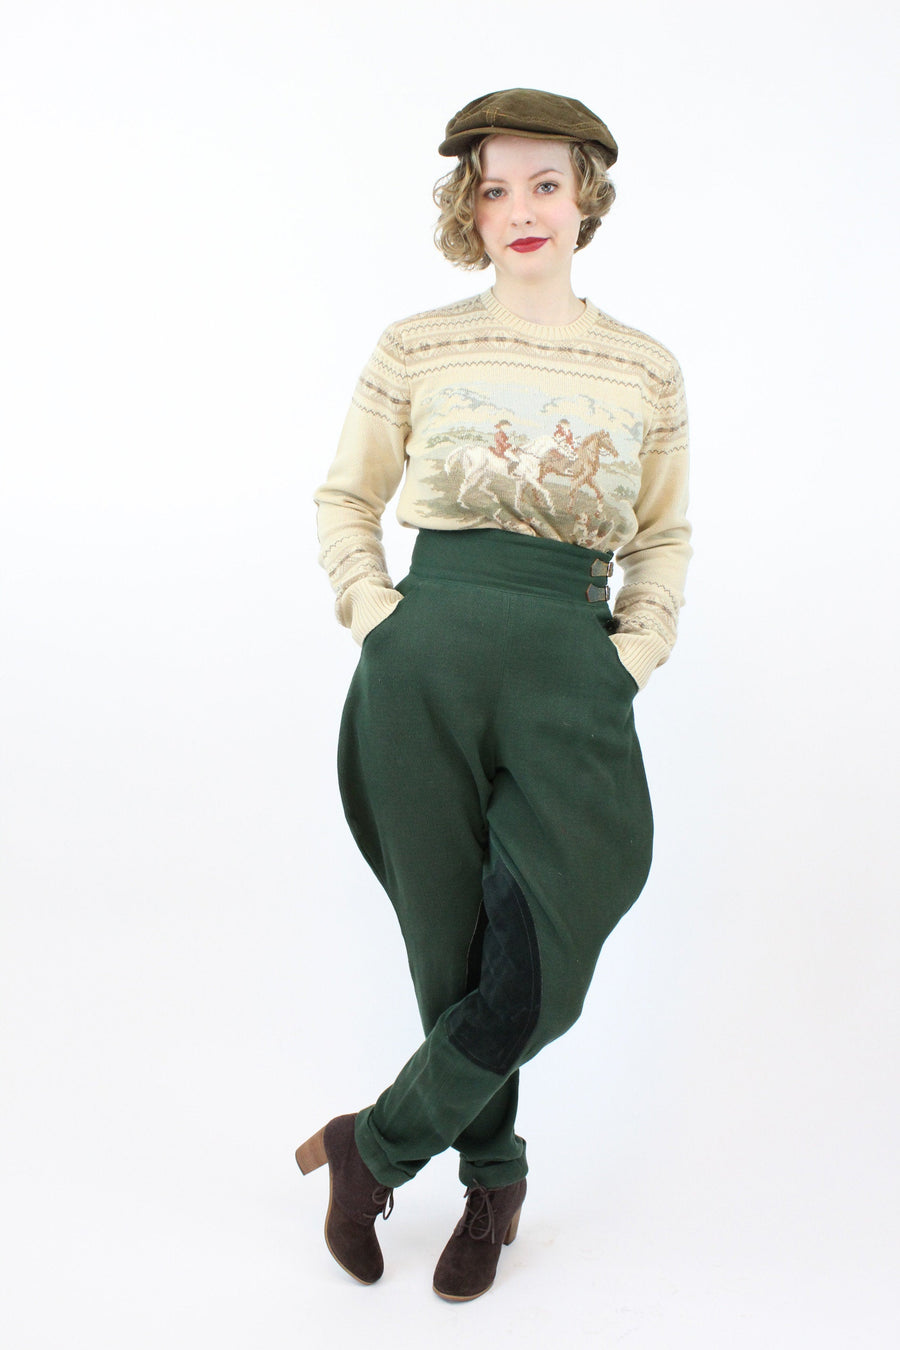 1930s 1940s jodhpurs riding breeches pants | wool trousers stirrups | xs